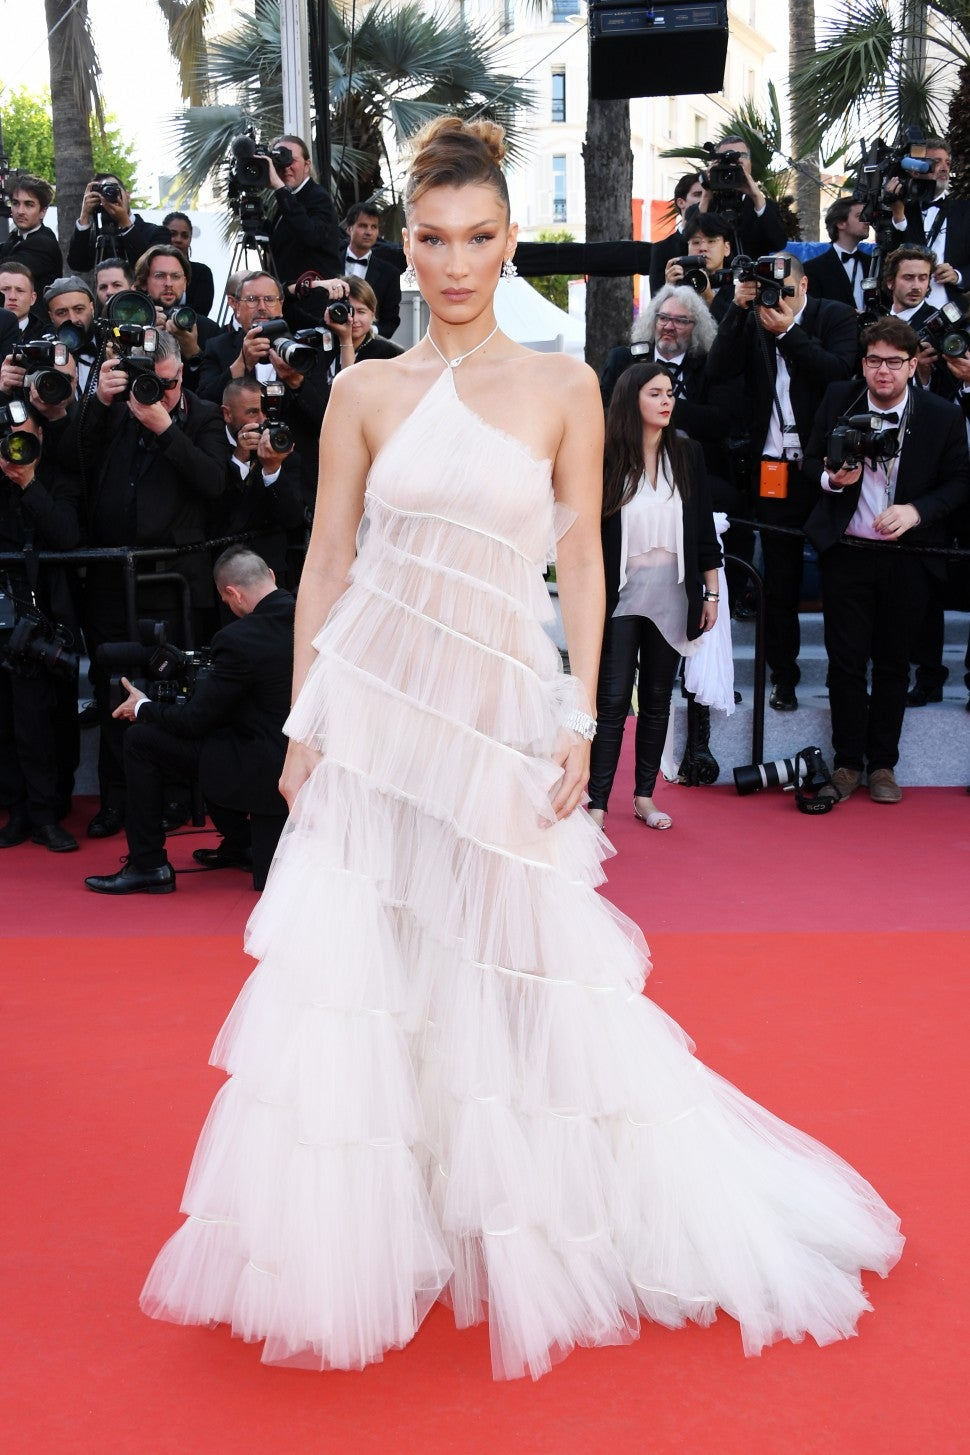 Bella Hadid at 2019 Cannes Film Festival